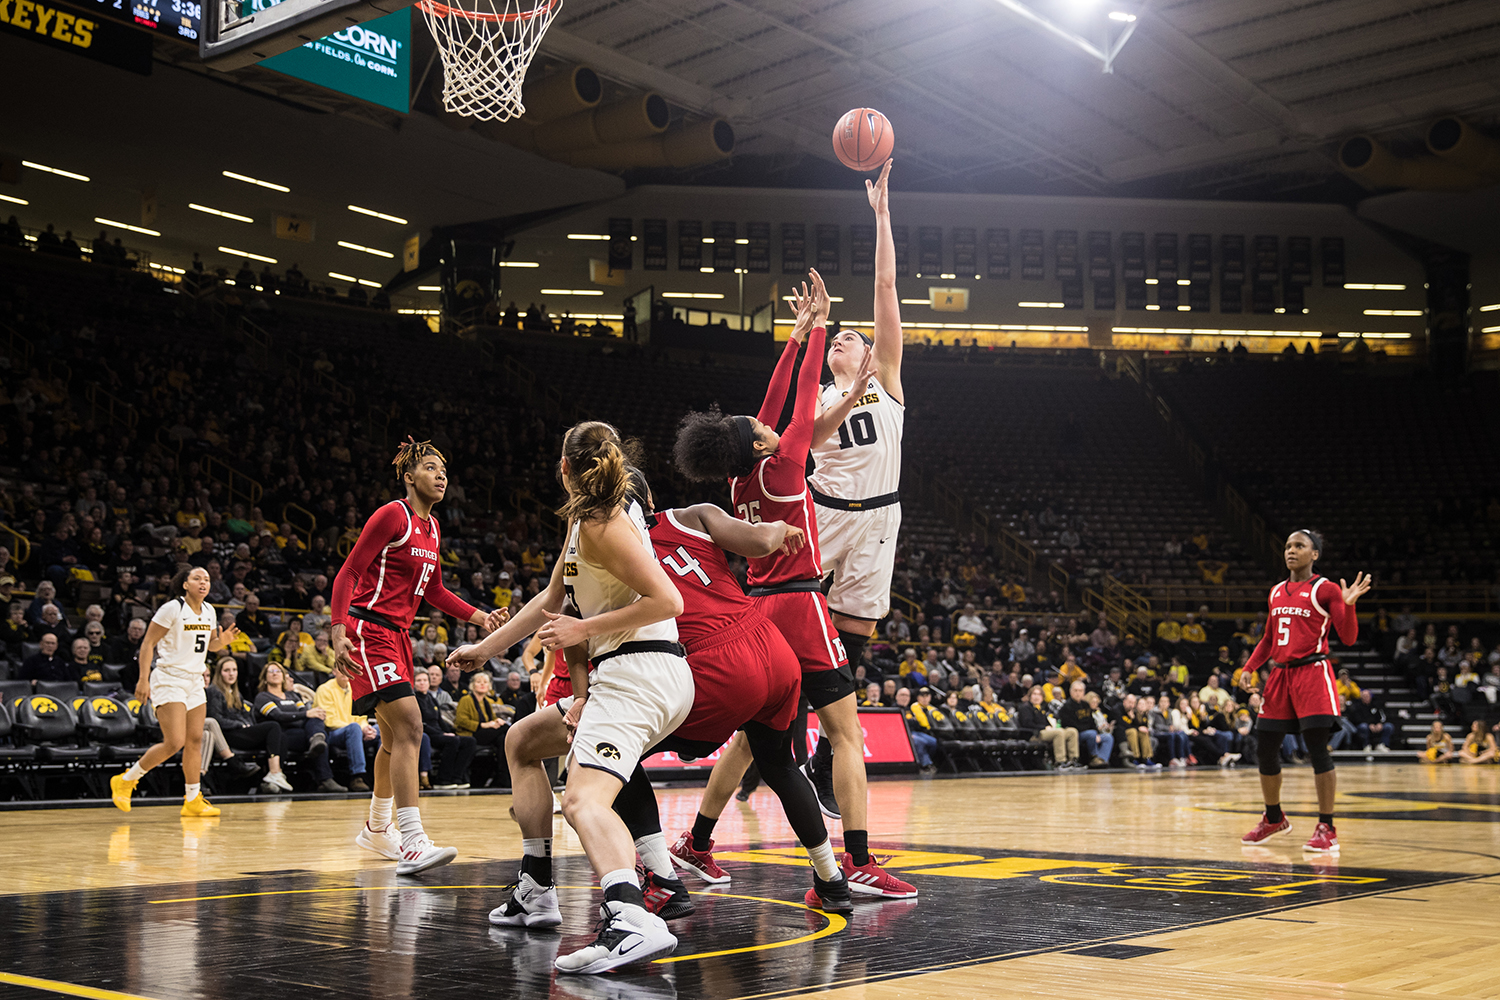 Iowa center Megan Gustafson lays the ball up during a women's basketball matchup between Iowa and Rutgers at Carver-Hawkeye Arena on Wednesday, January 23, 2019. The Hawkeyes defeated the Scarlet Knights, 72-66.